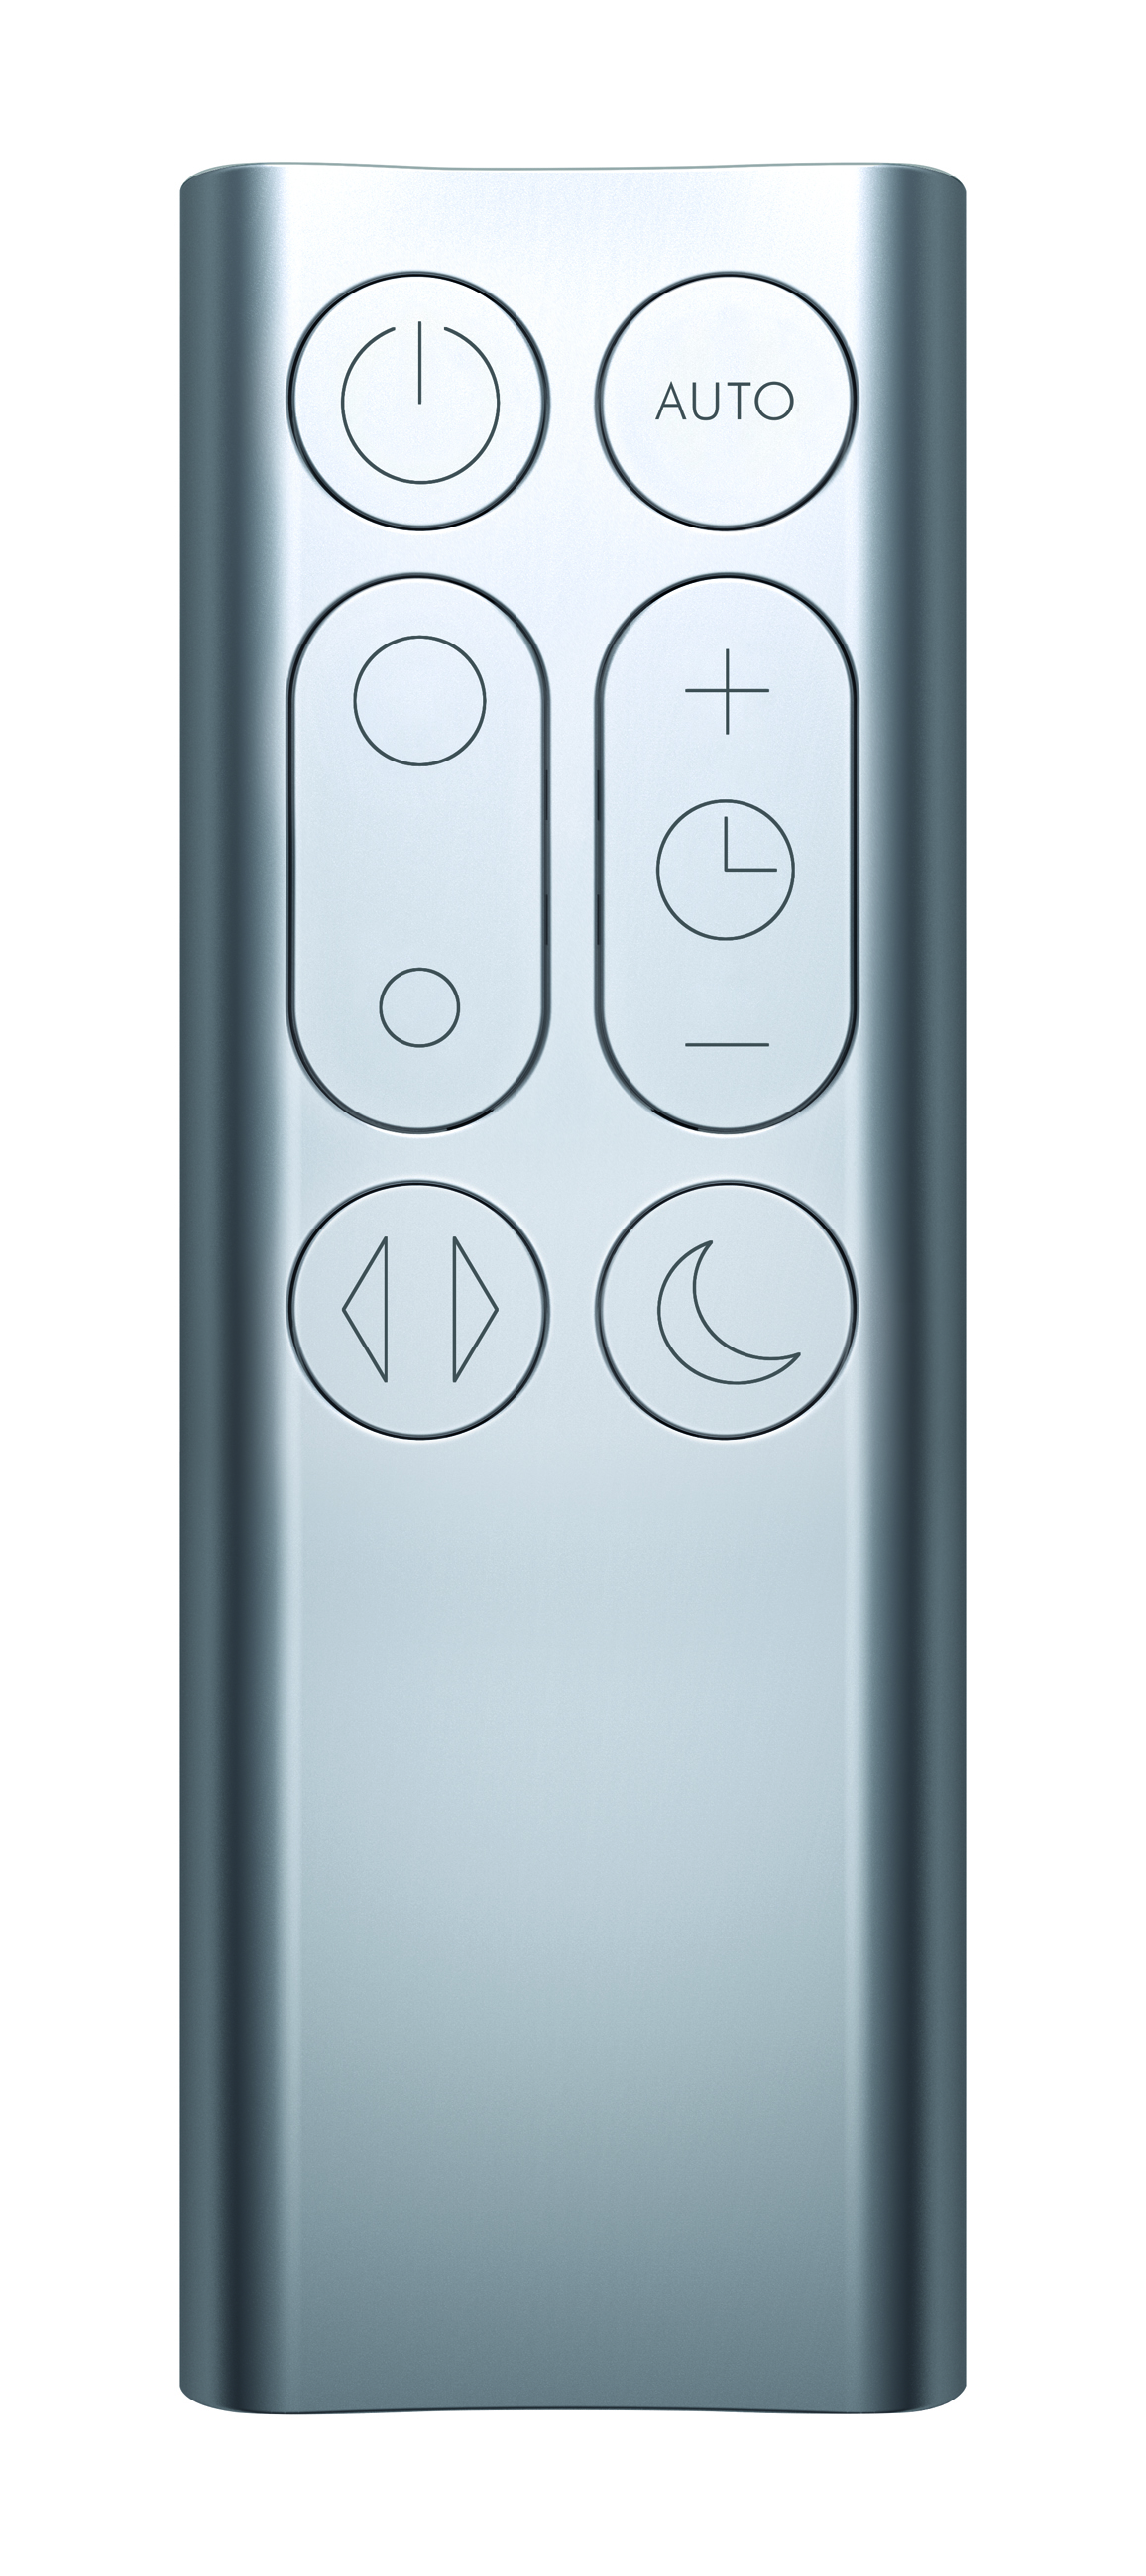 Dyson Designs For Connected Home With Air Quality App